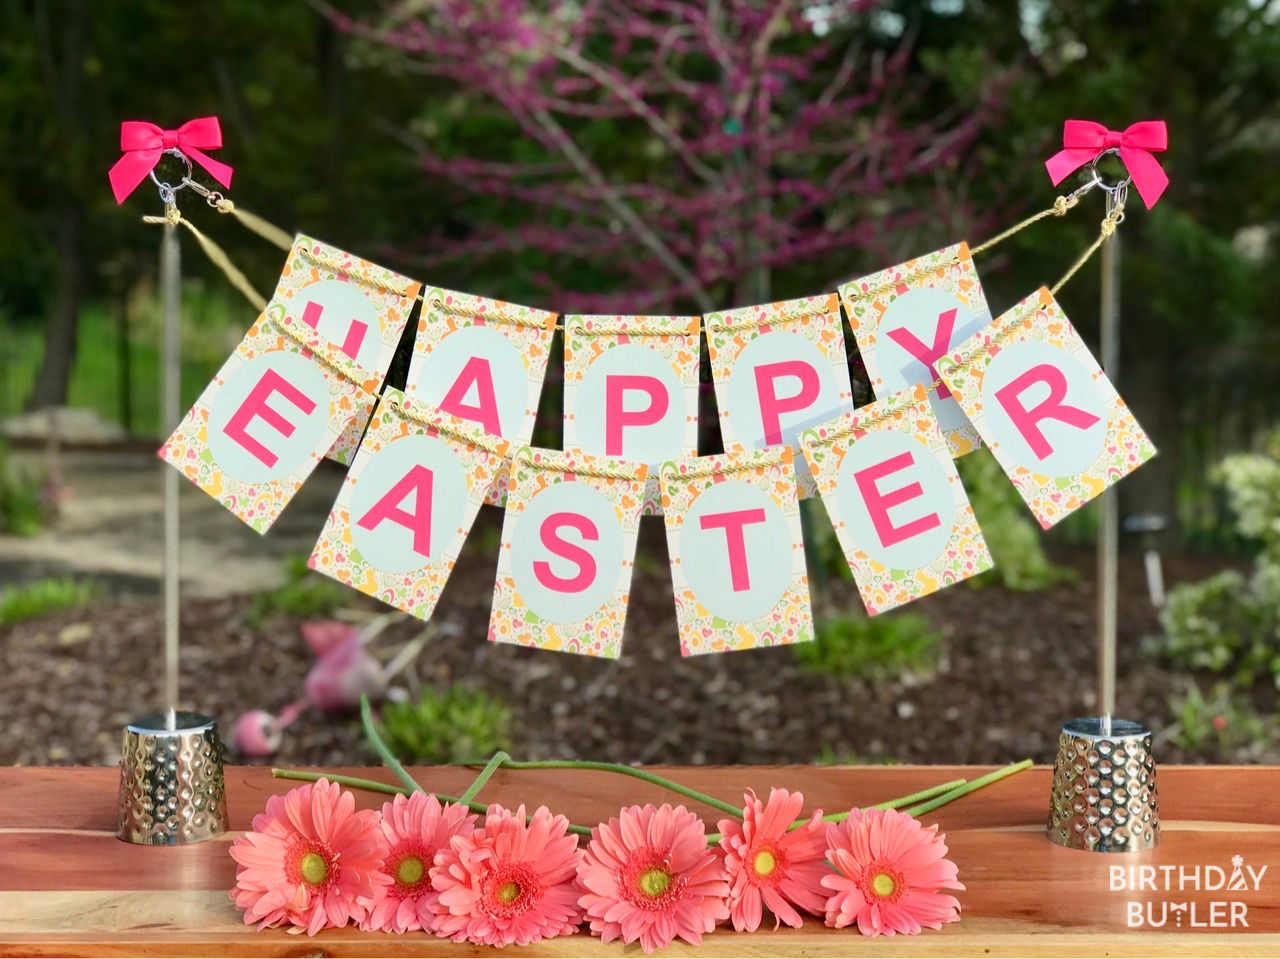 Easter is fast approaching! Grab this Happy Easter banner